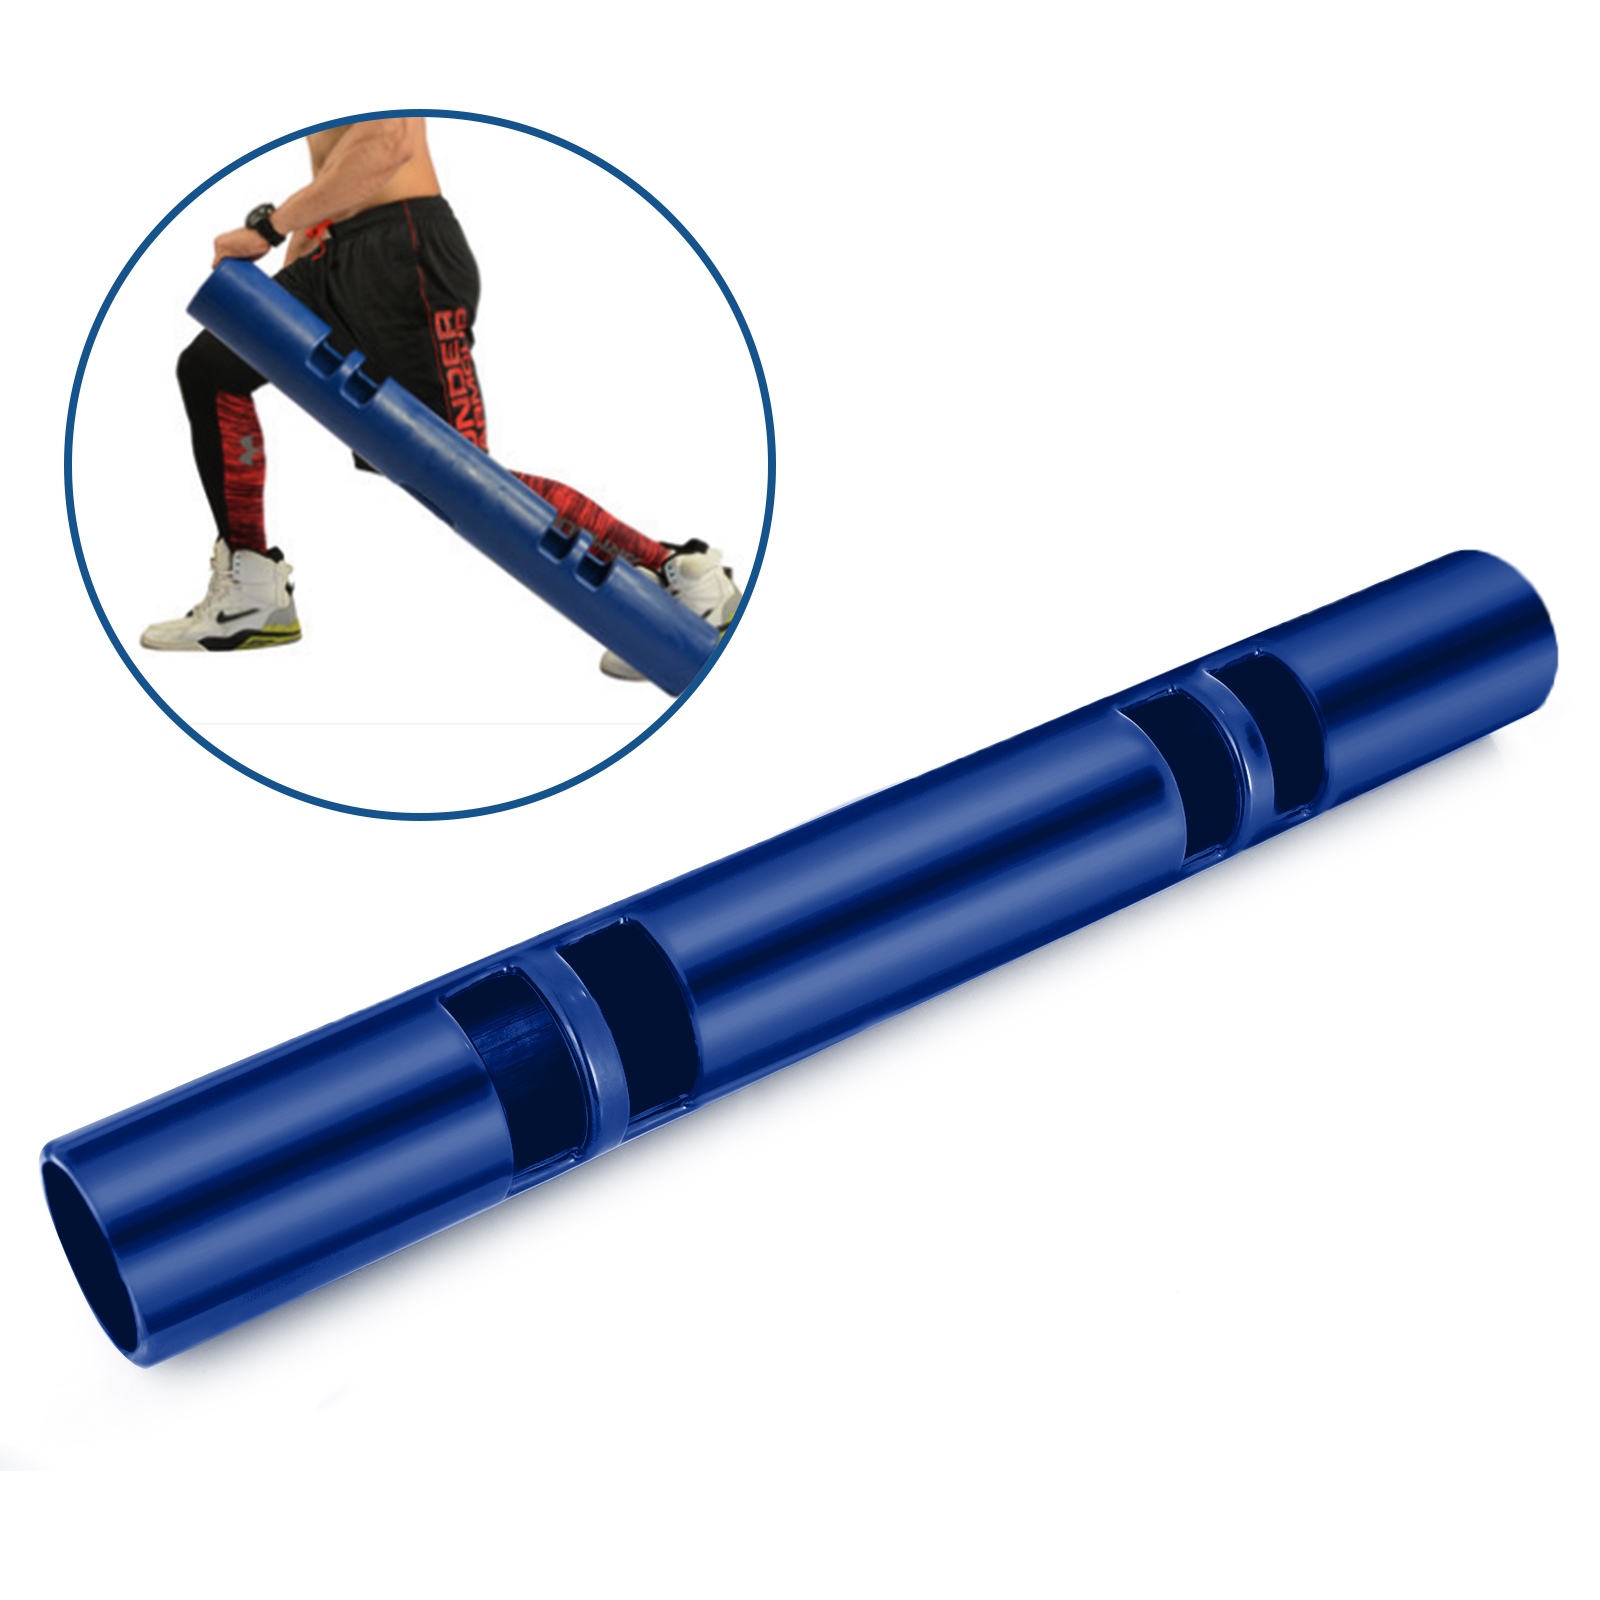 Vipr-Fitpro-Fitness-Tube-Loaded-Movement-Training-weightlifting-4-6-8-10-12-Kg thumbnail 47